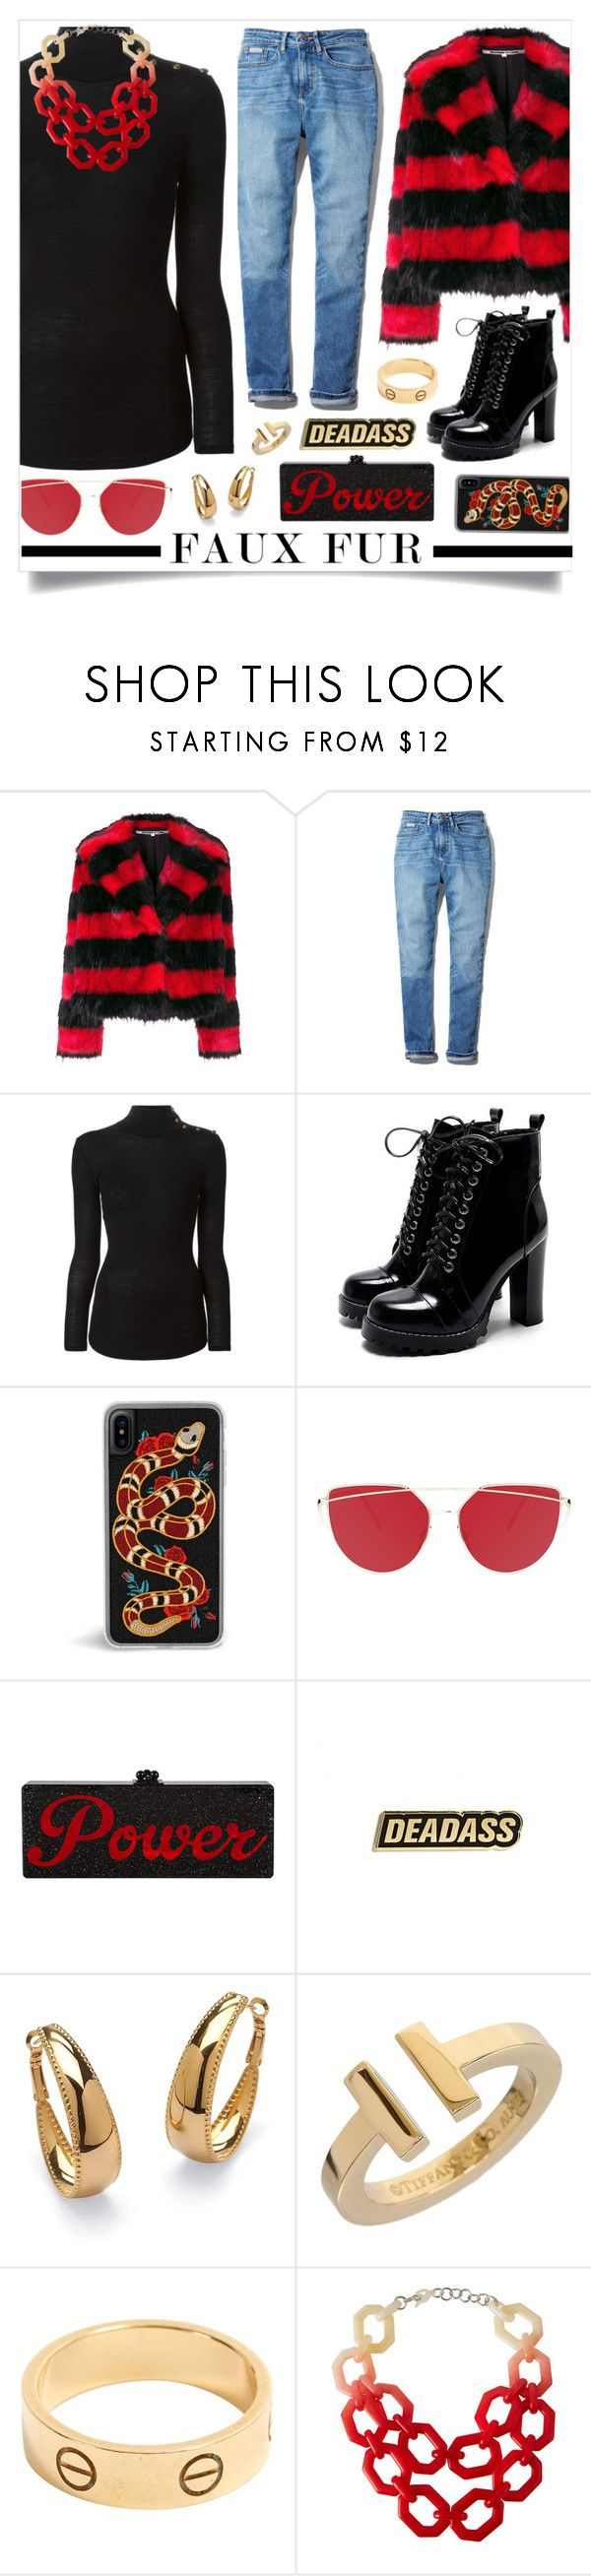 """""""School Style"""" by madeinmalaysia ❤ liked on Polyvore featuring McQ by Alexander McQueen, Calvin Klein, Balmain, Palm Beach Jewelry, Tiffany & Co., Cartier, Alisha.D and fauxfur"""